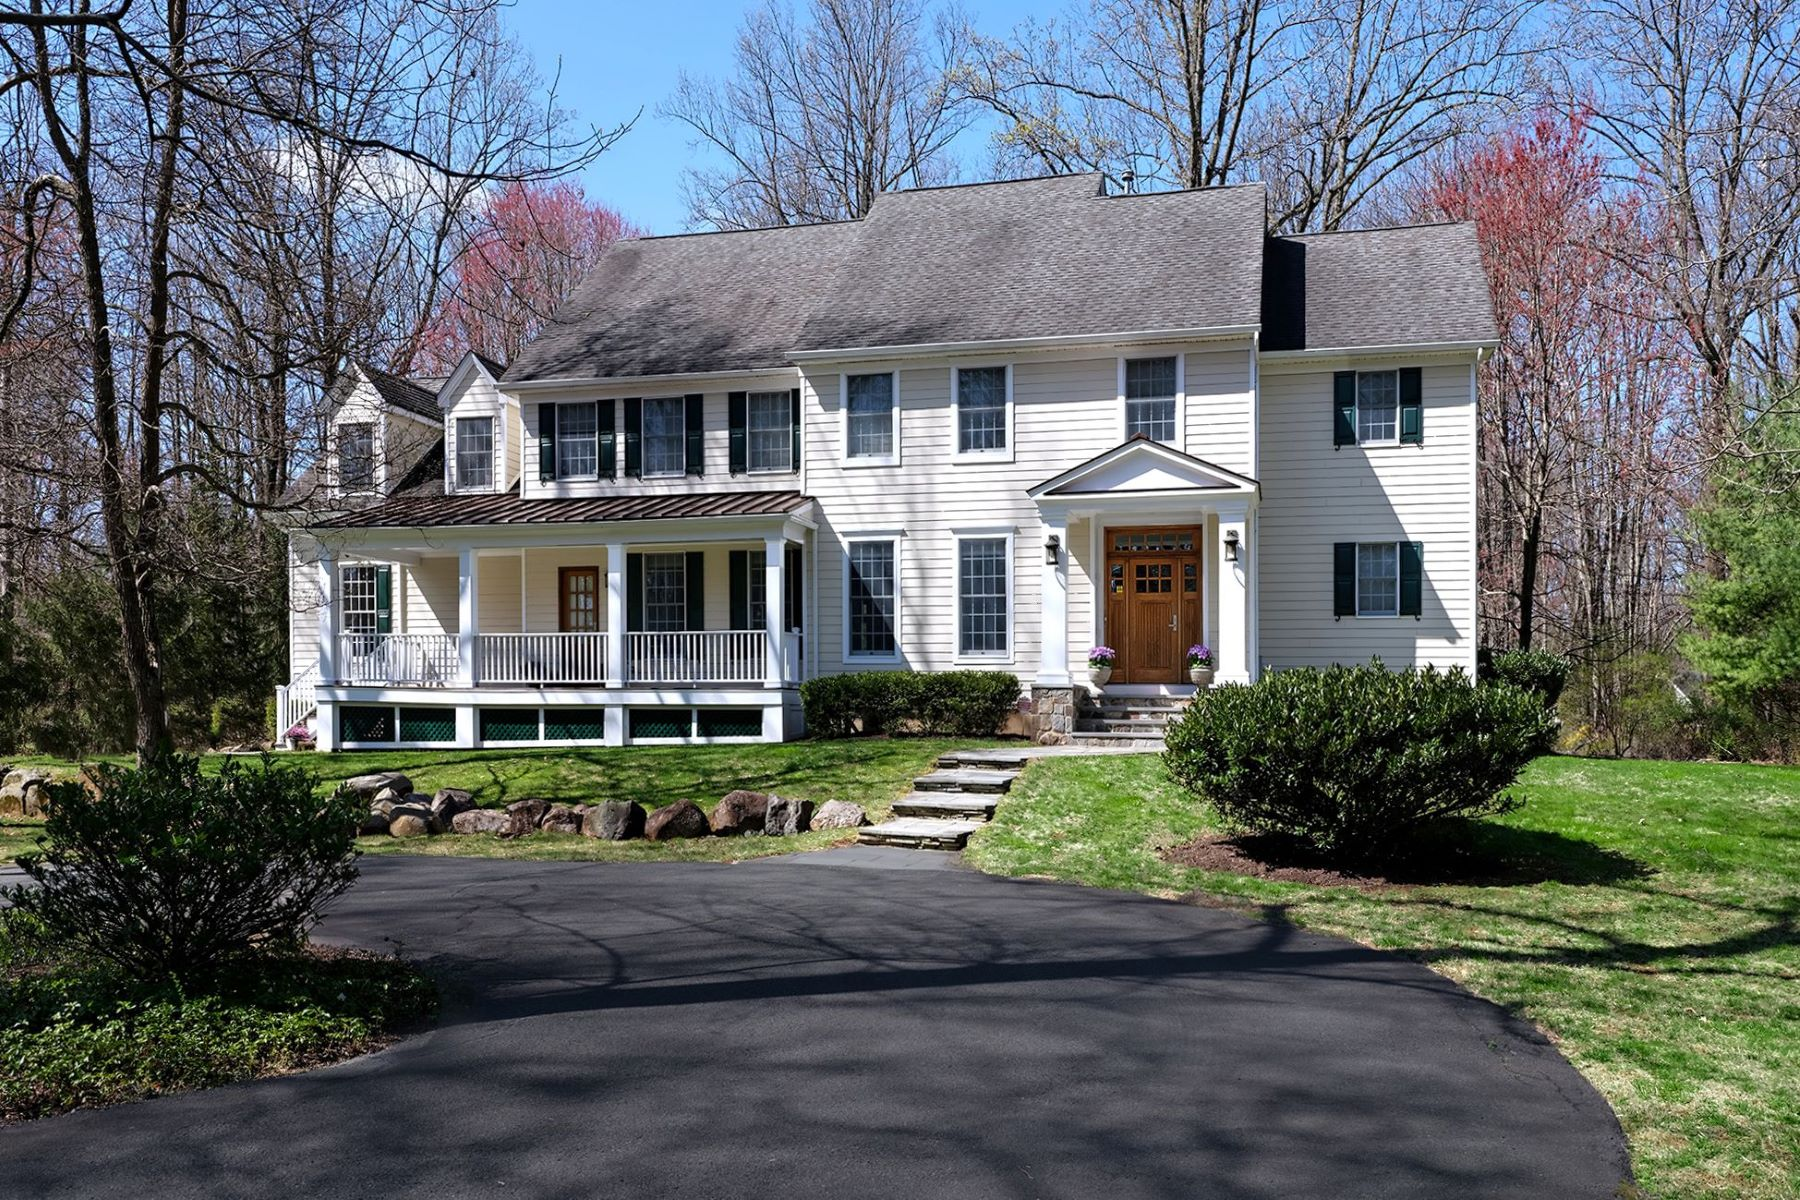 Single Family Homes for Rent at A True Beauty With Many Recent Improvements 656 Cherry Hill Road, Princeton, New Jersey 08540 United States